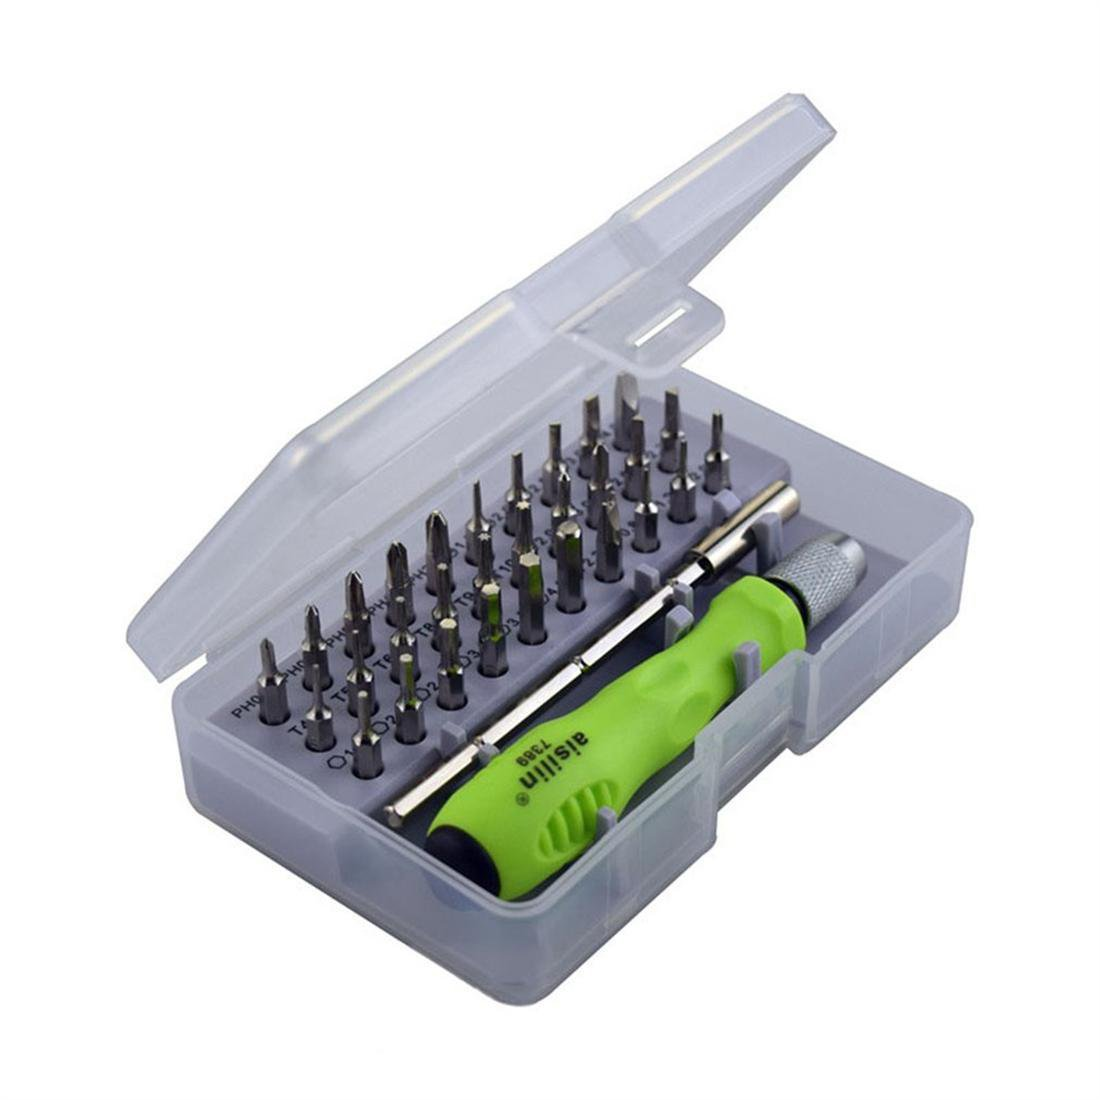 31 in One Interchangeable Screwdriver Set Mini Electronic Repair Tools 7389C